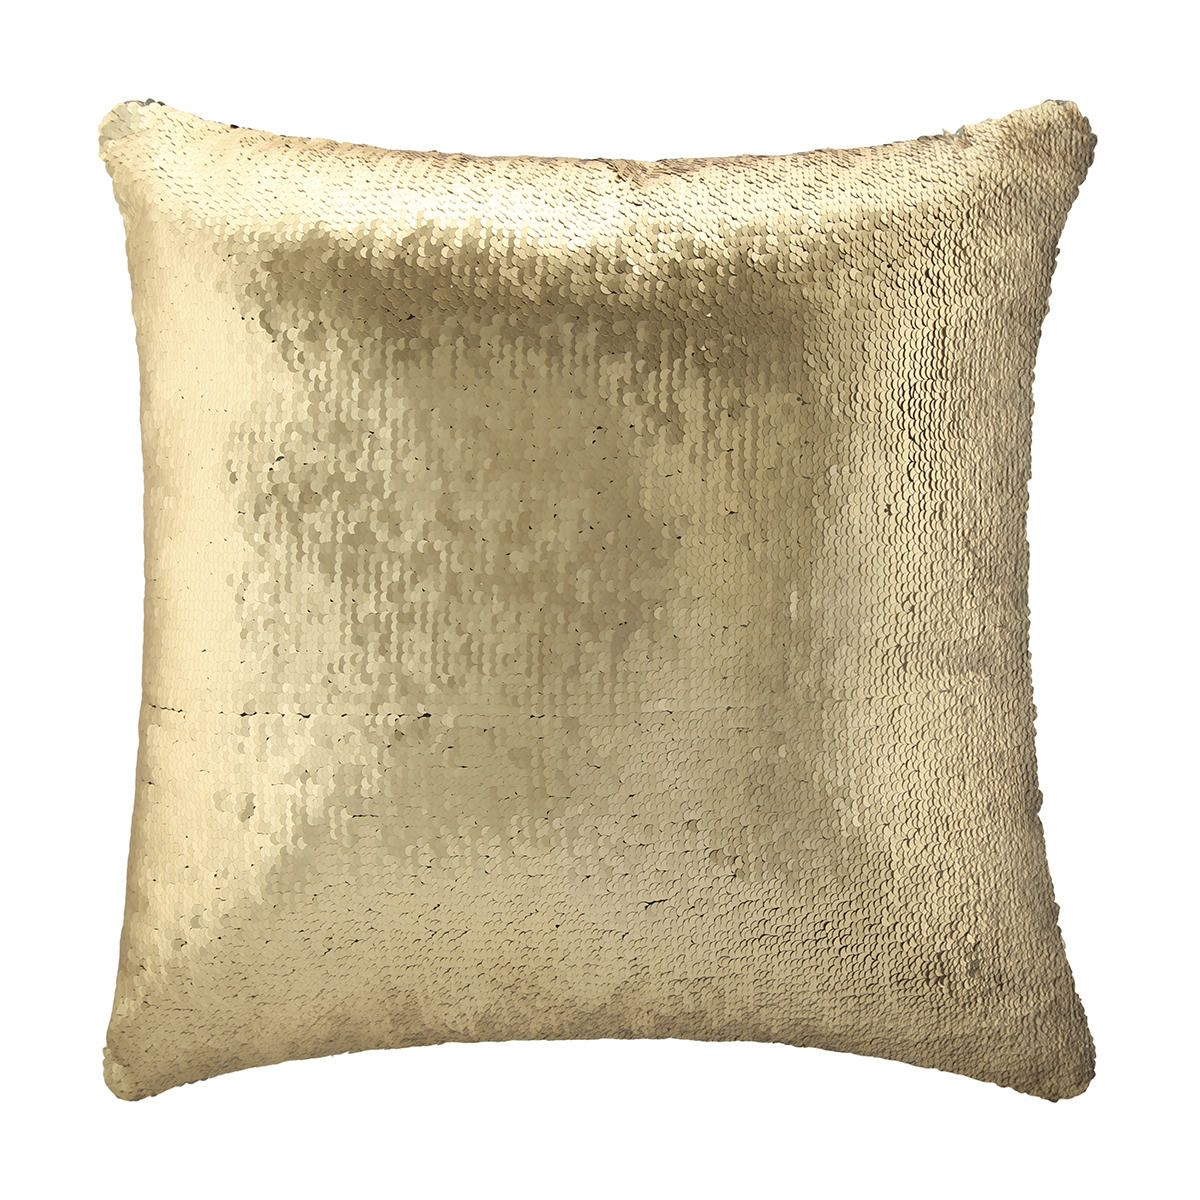 Sequin Cushion Gold Kmart North Arm Cove Pinterest Bedrooms